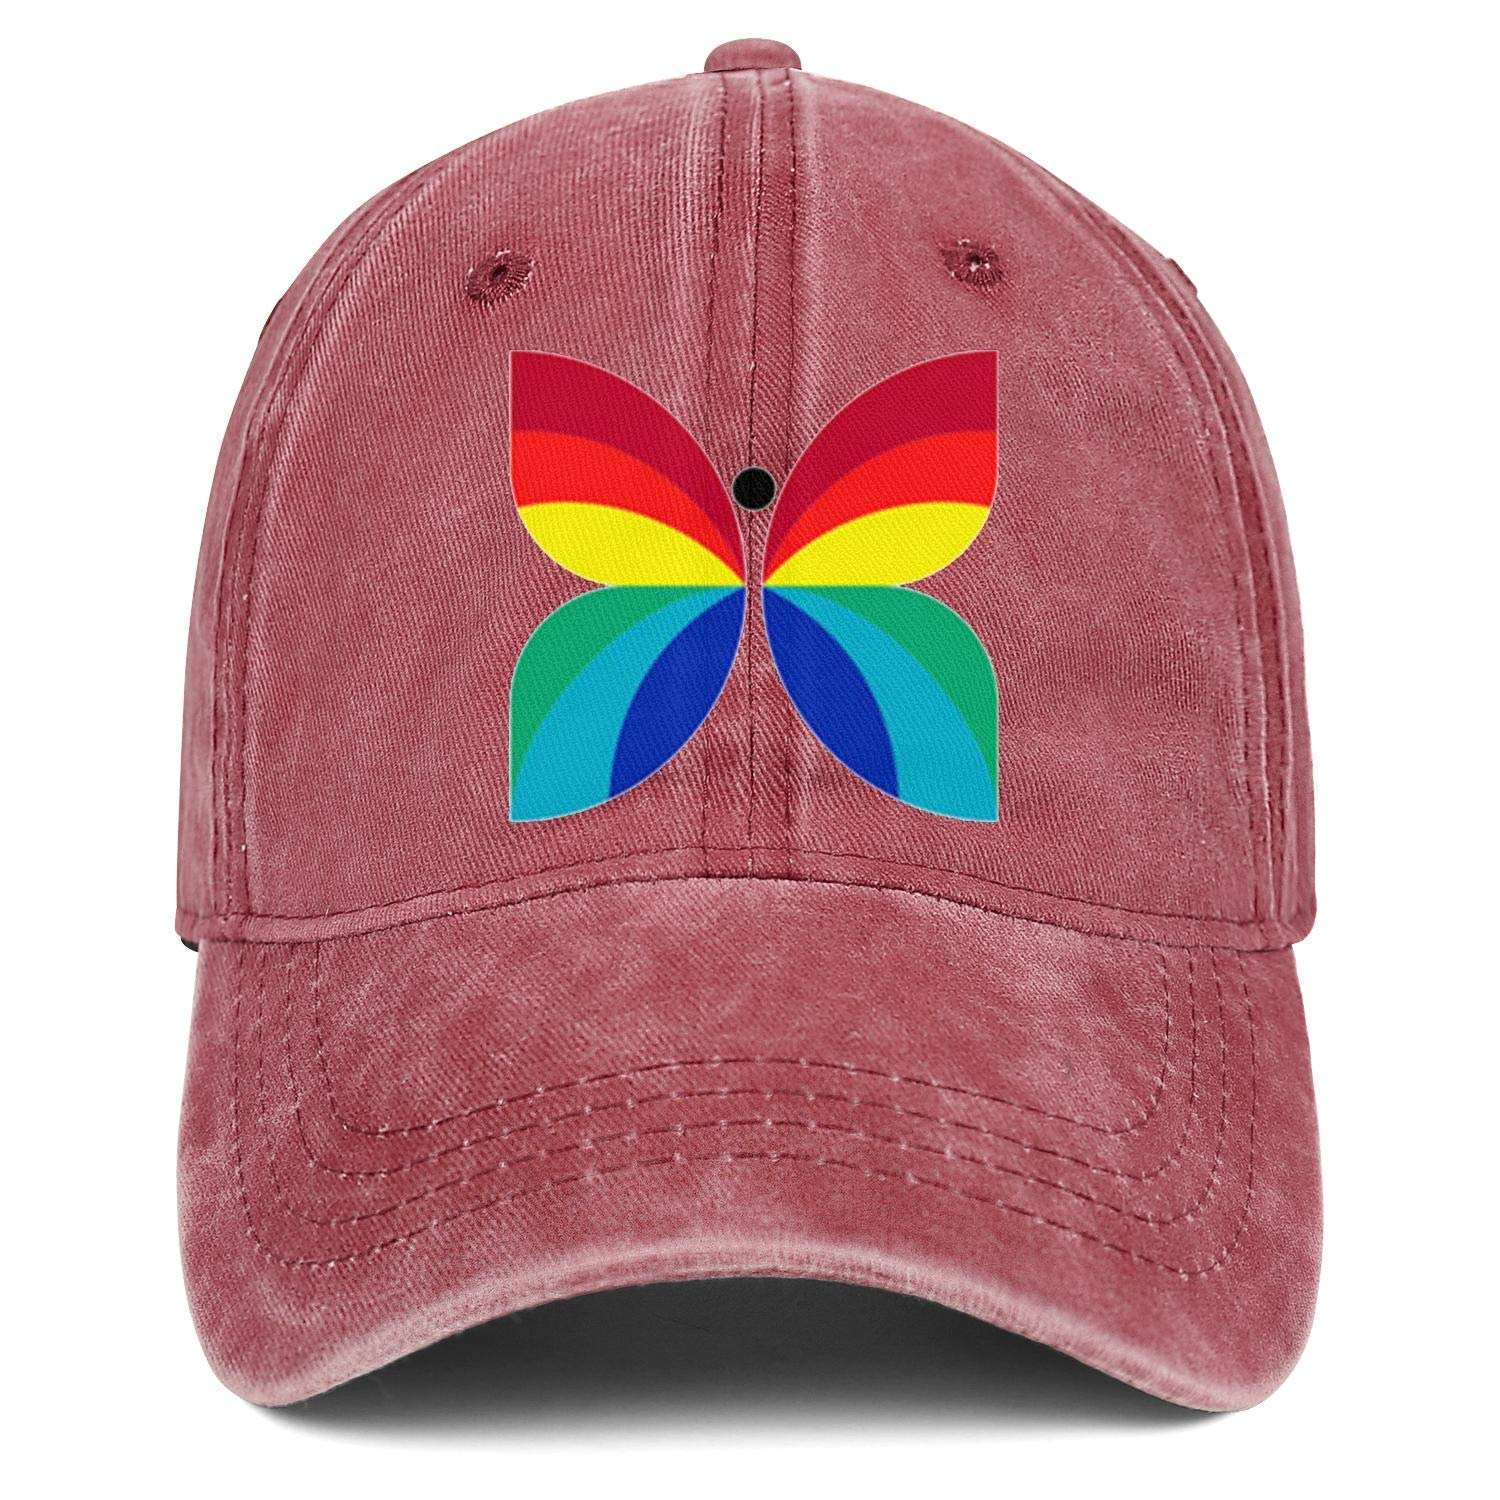 CBC Logo/_1 Unisex Cotton Baseball Cap Fit Stylish Snapback Hat Suitable with Outdoor